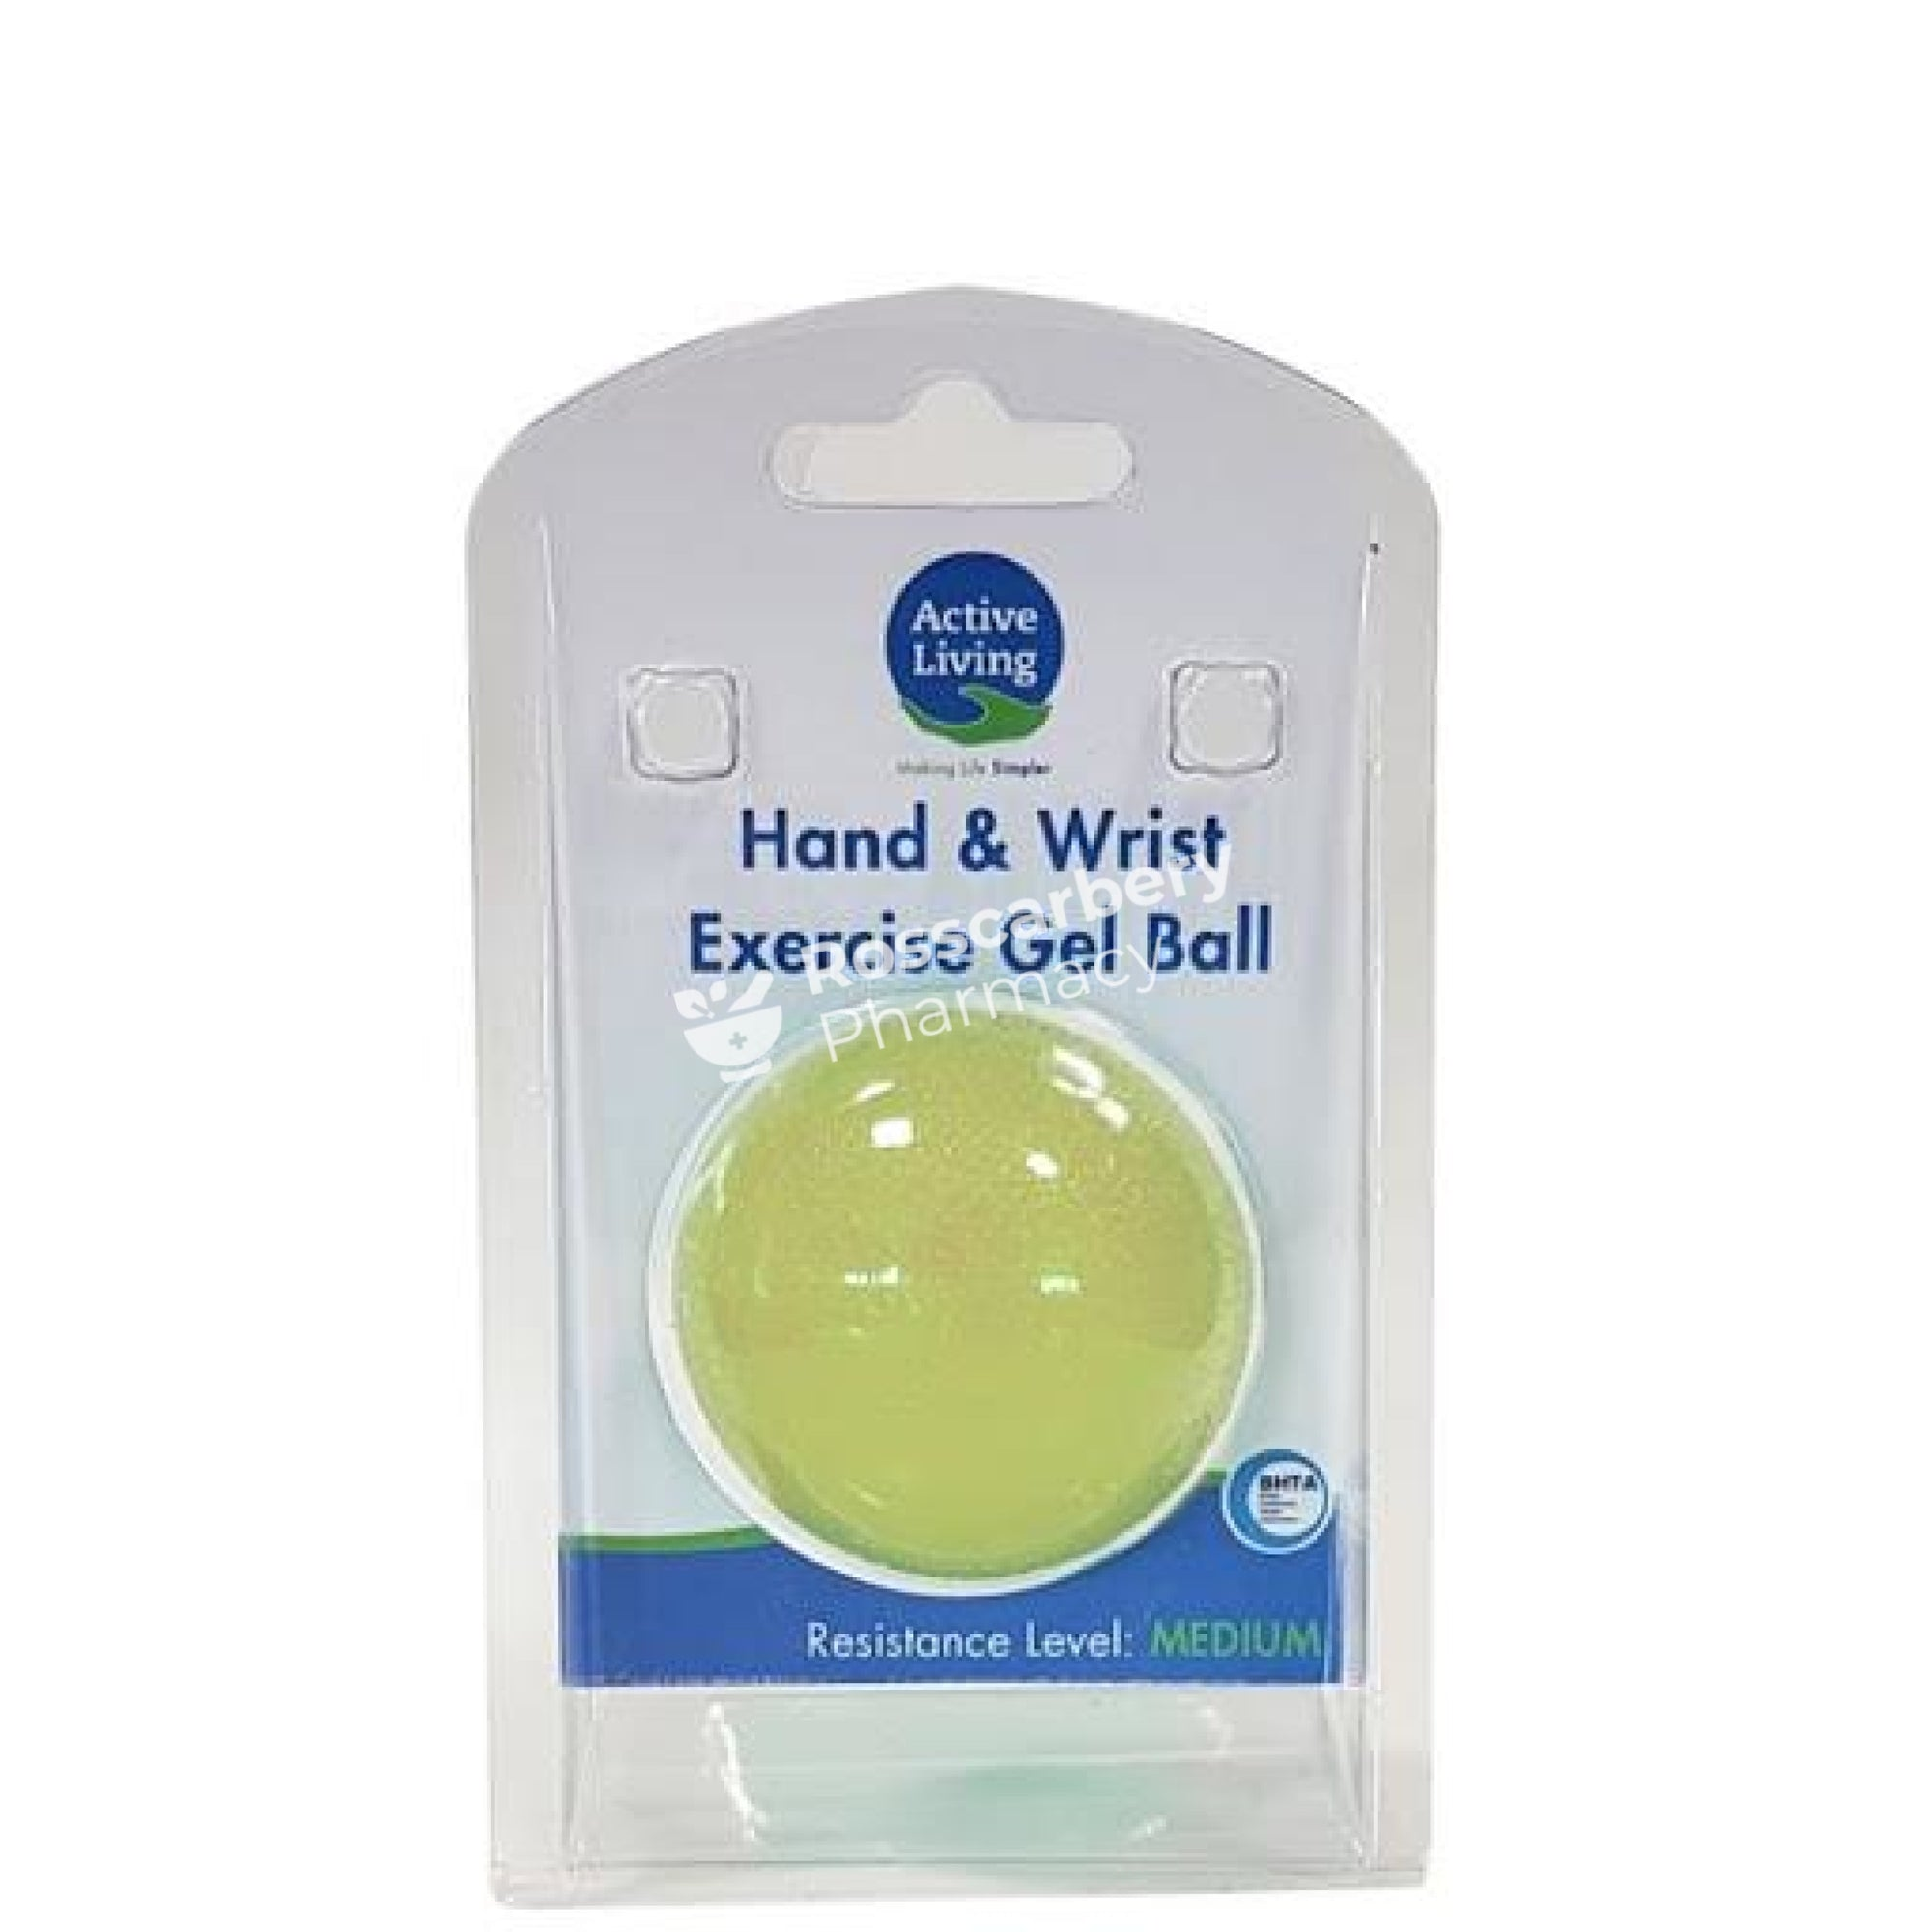 Active Living Hand & Wrist Gel Ball - Medium Resistance First Aid Accessories